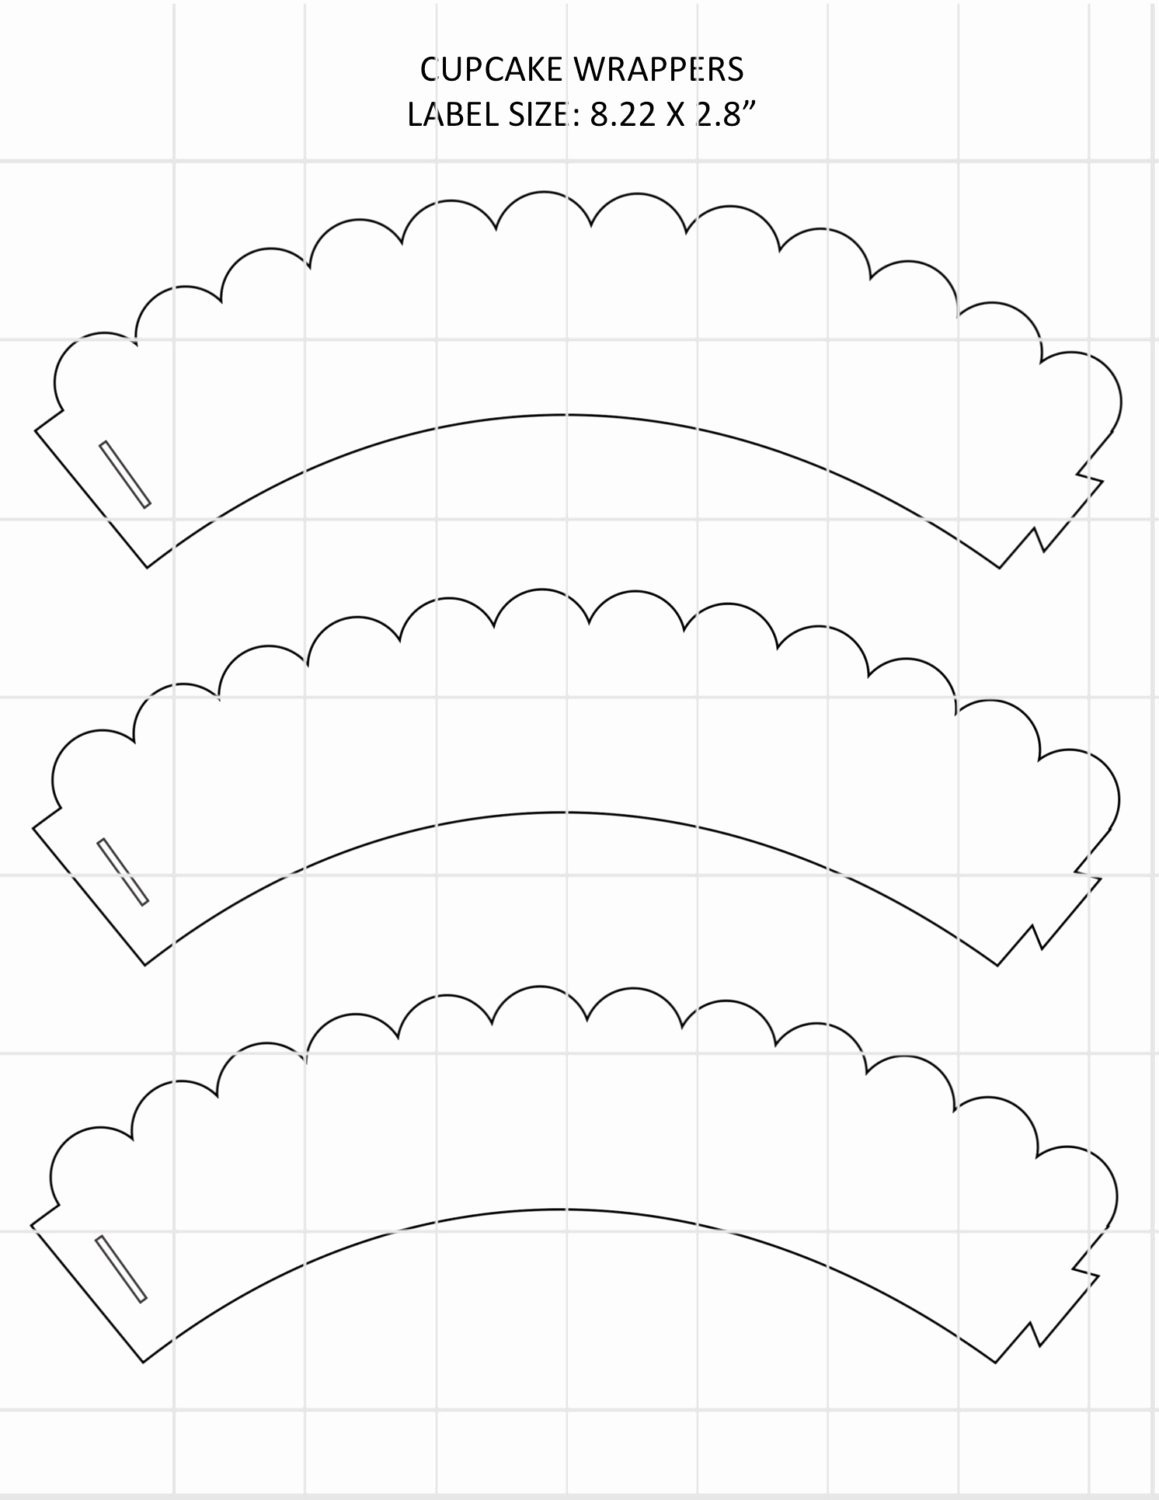 Cupcake Wrapper Template Awesome Waves Cupcake Wrapper Template